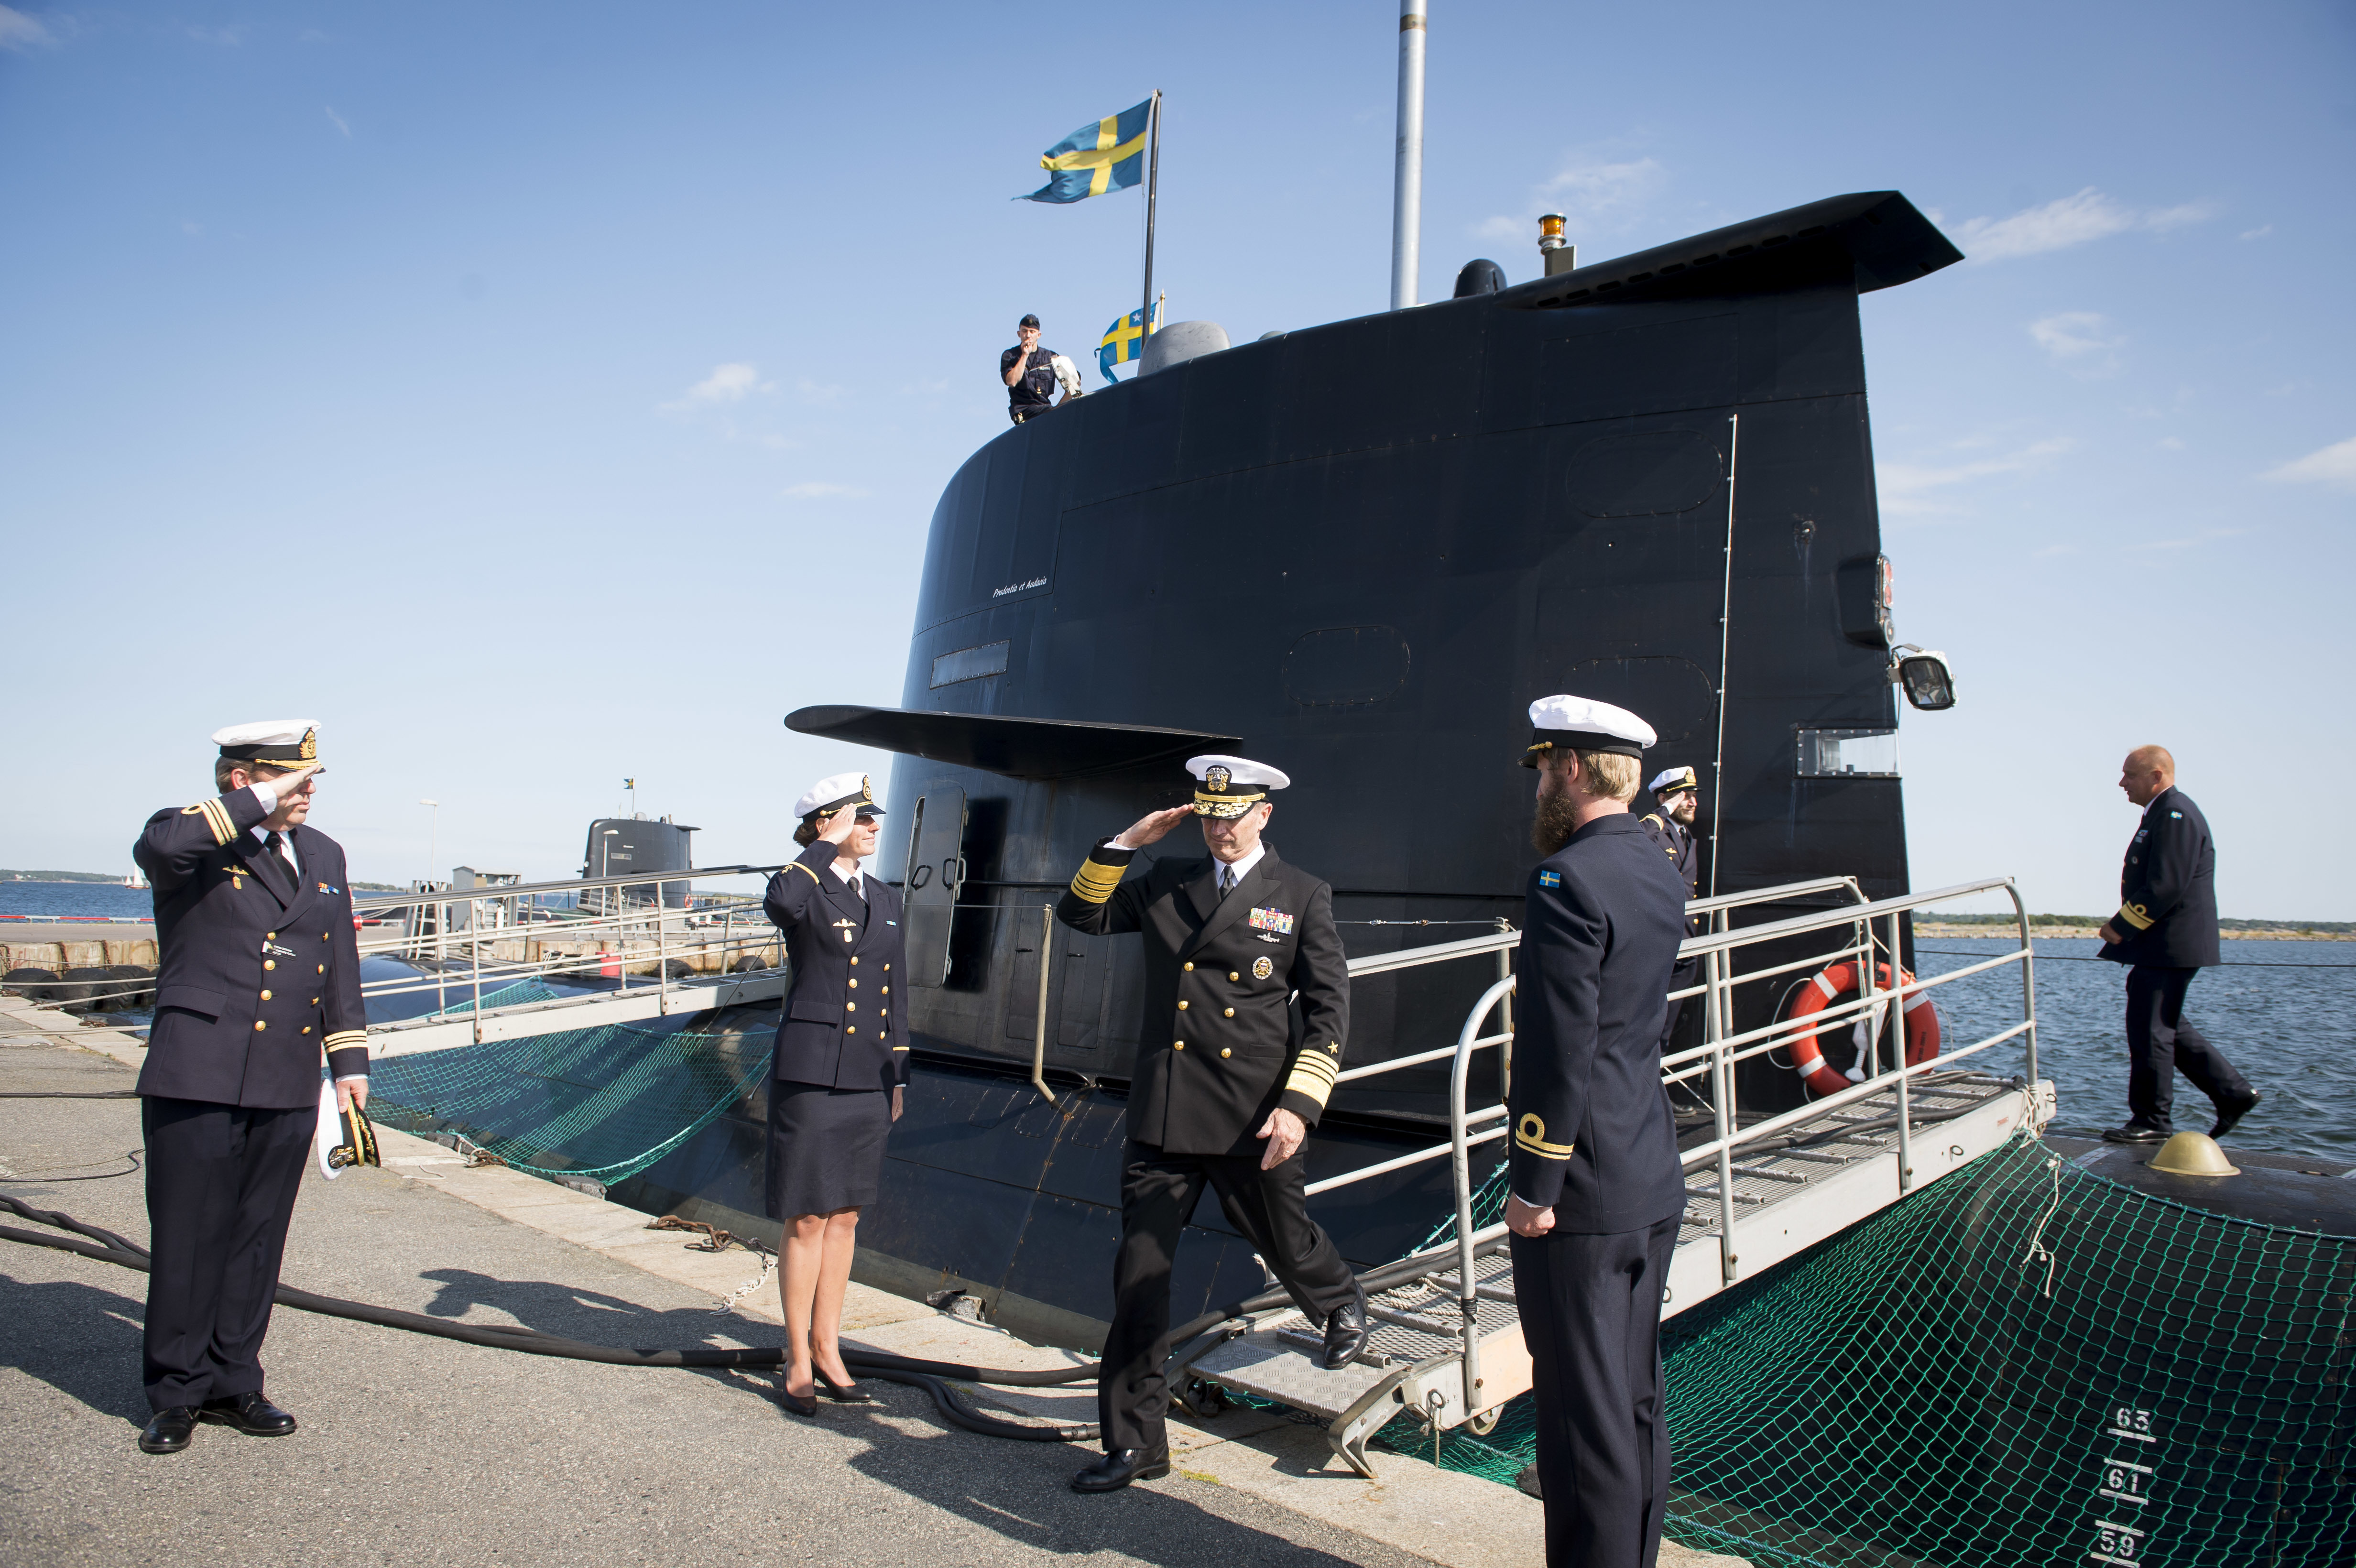 Then-Chief of Naval Operations (CNO) Adm. Jonathan Greenert is piped ashore after touring the Swedish submarine HMS Uppland at Karlskrona Naval Base on July 14, 2015. US Navy photo.